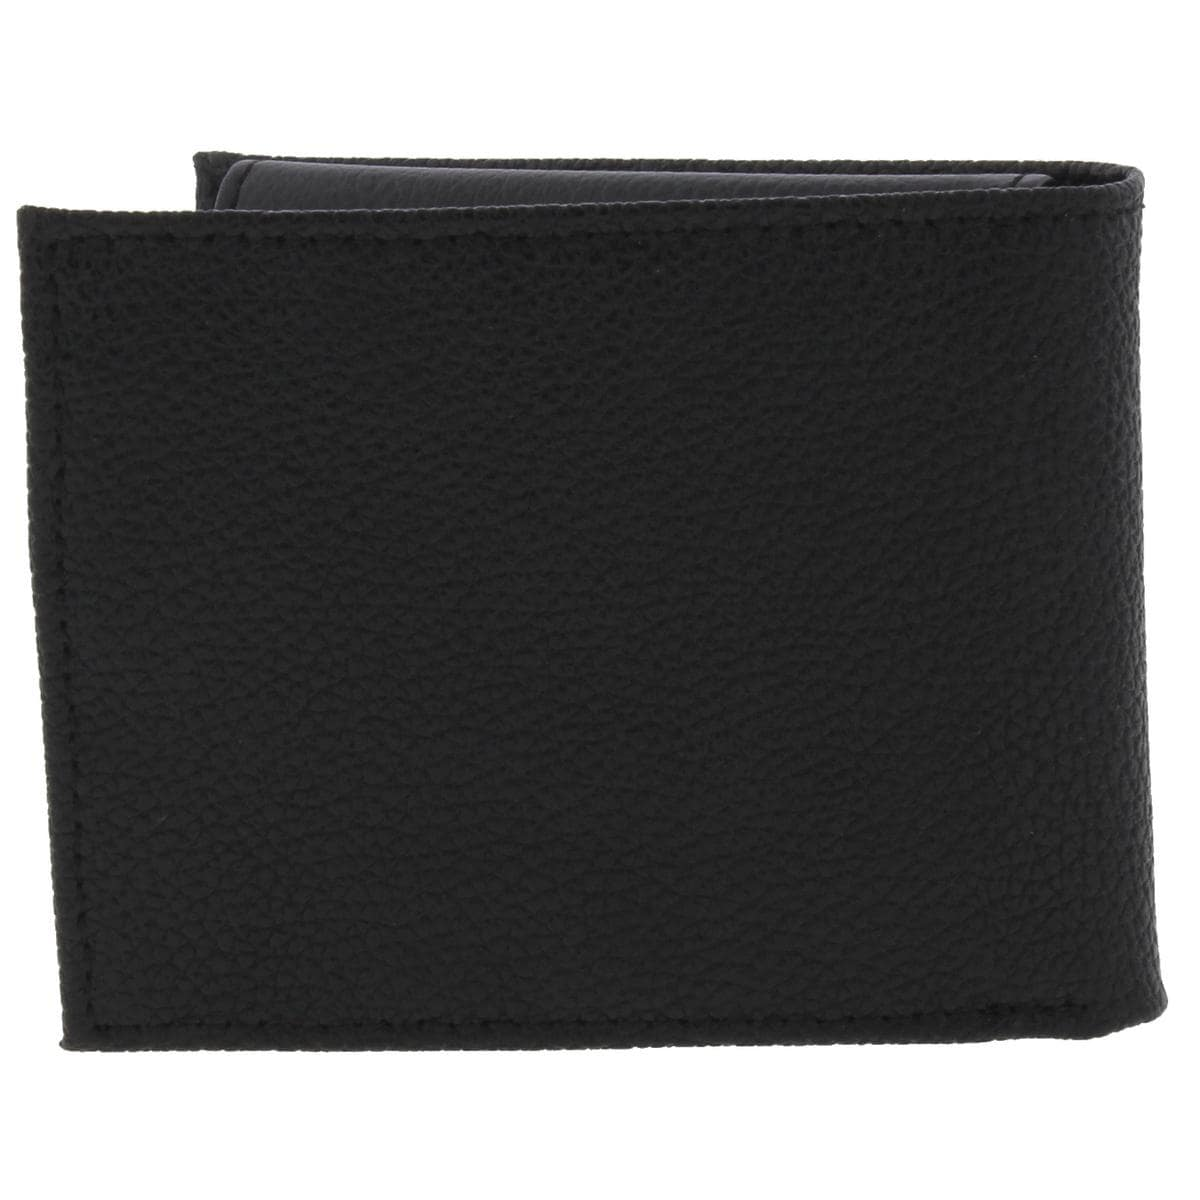 d6c3adac35 Shop Nike Mens Bifold Wallet Leather Billfold - O/S - Free Shipping On  Orders Over $45 - Overstock - 22022635